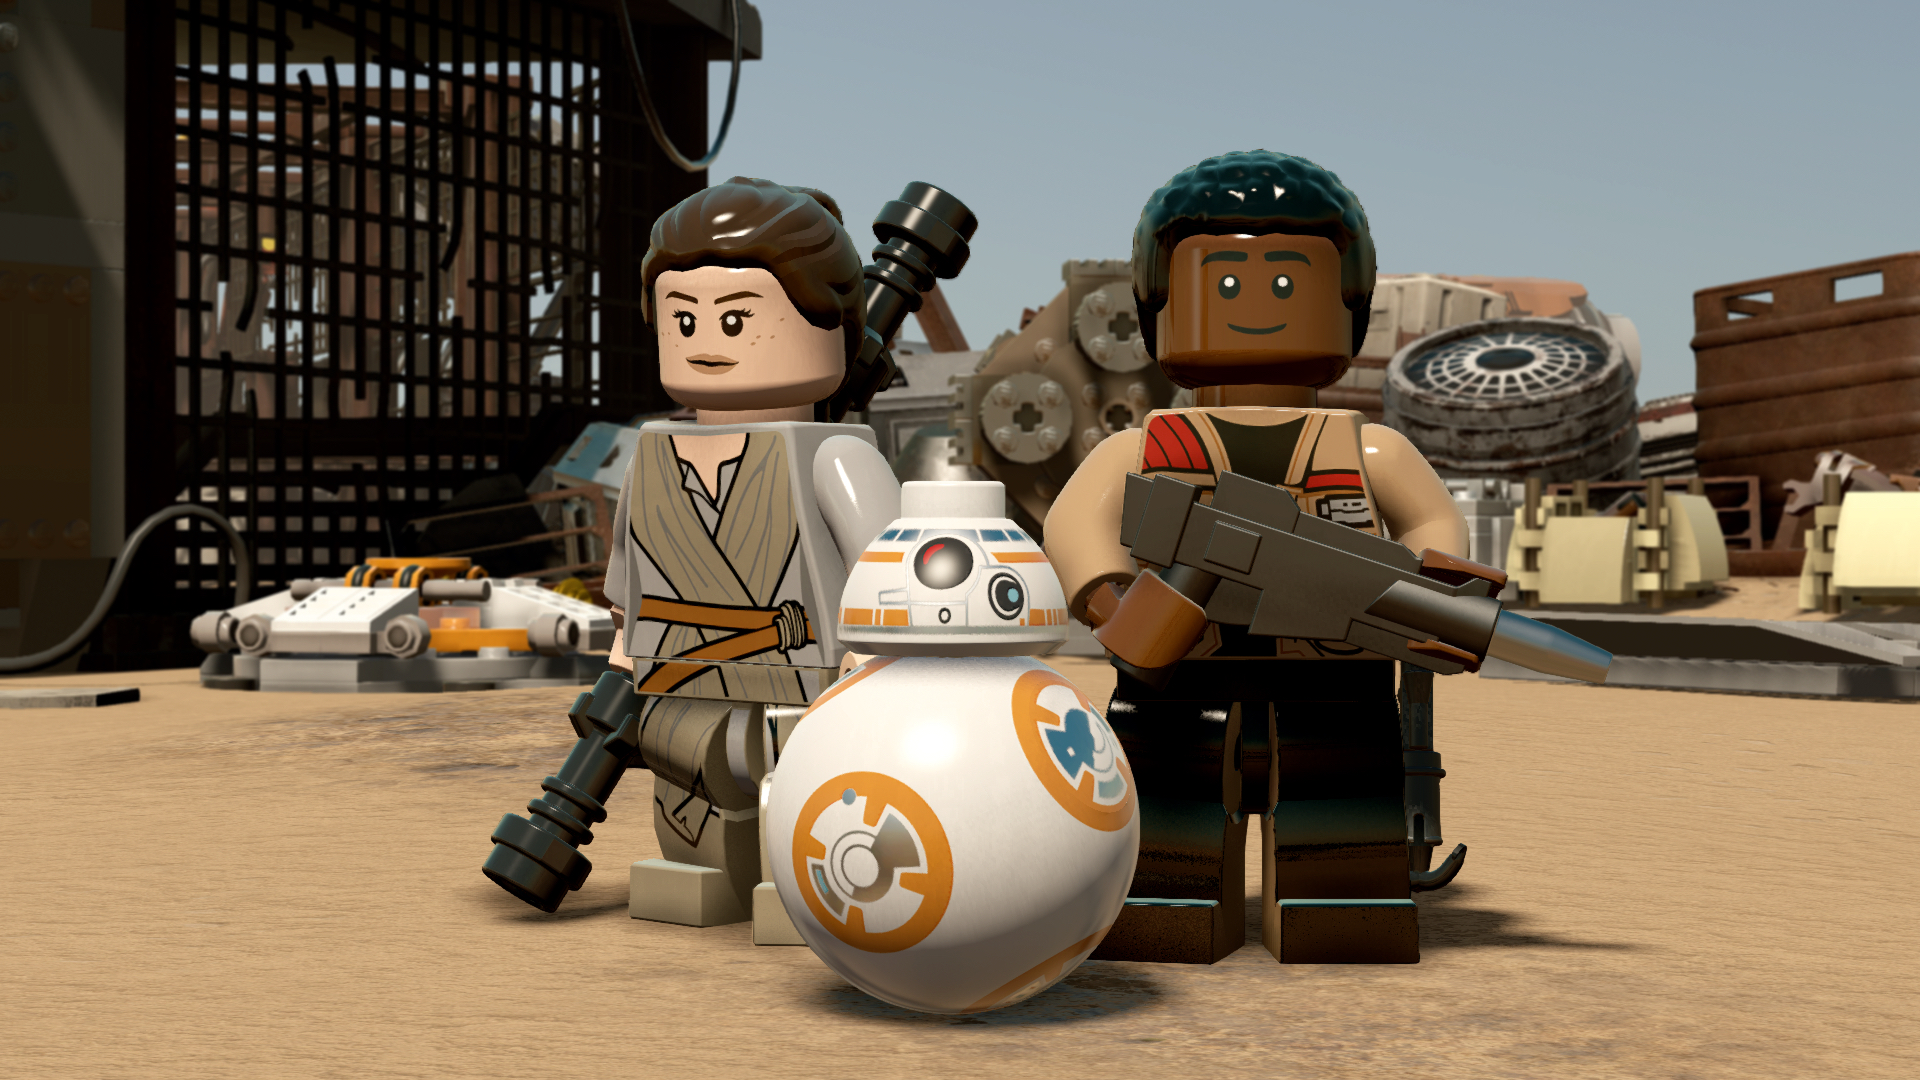 Lego Star Wars The Force Awakens Gameplay Trailer Ew Com